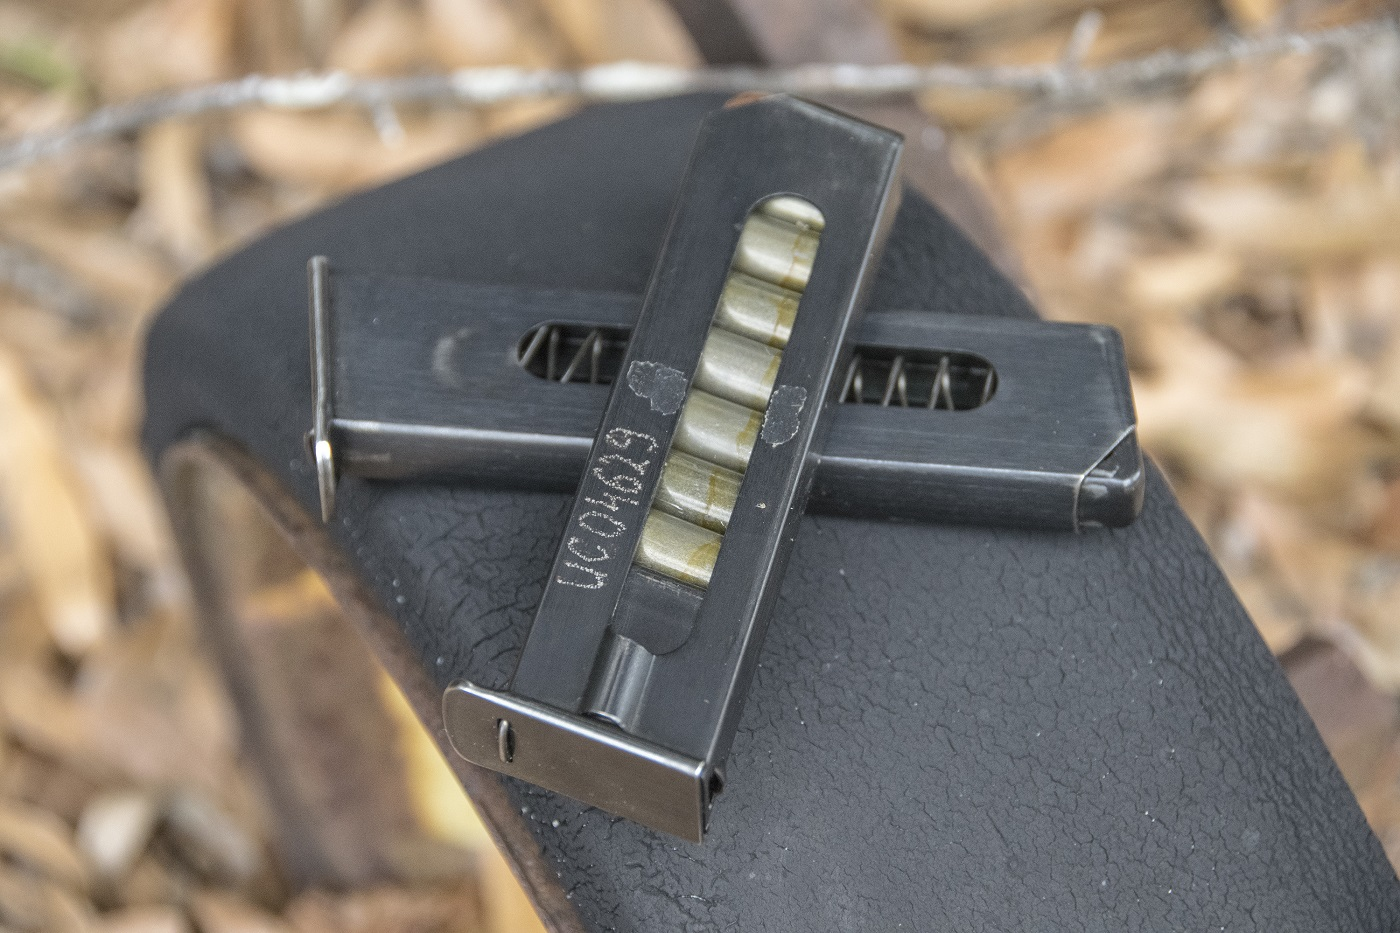 P 83 Wanad Magazines For Sale